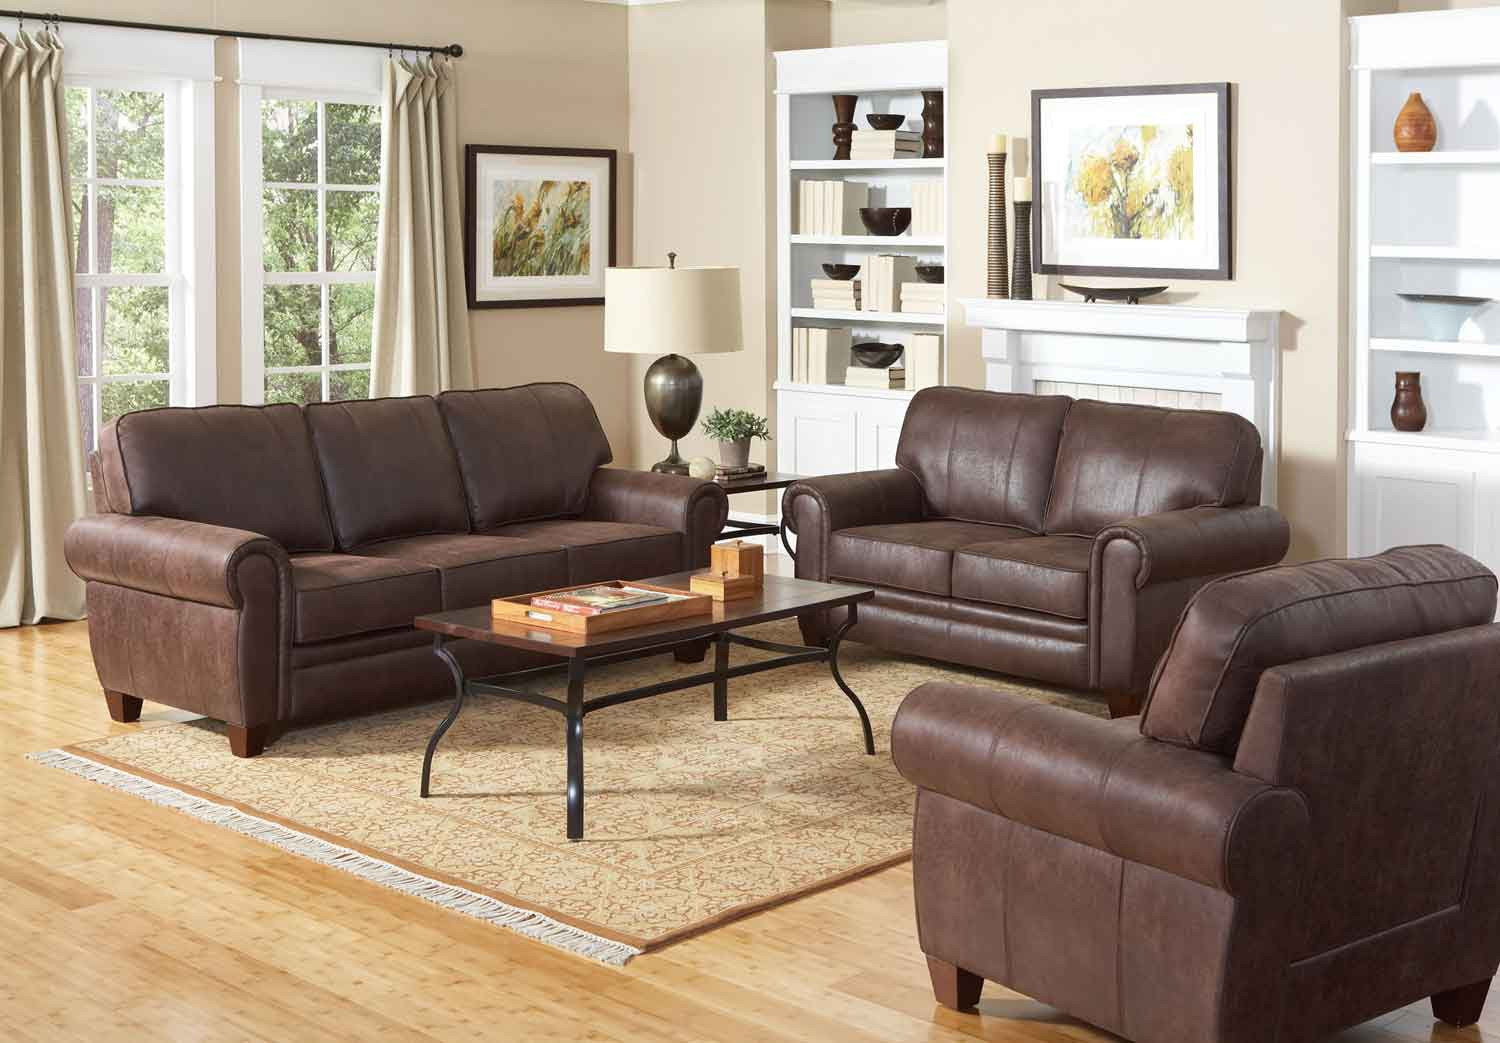 Best ideas about Family Room Chairs . Save or Pin Coaster Bentley Living Room Set Brown LivSet at Now.